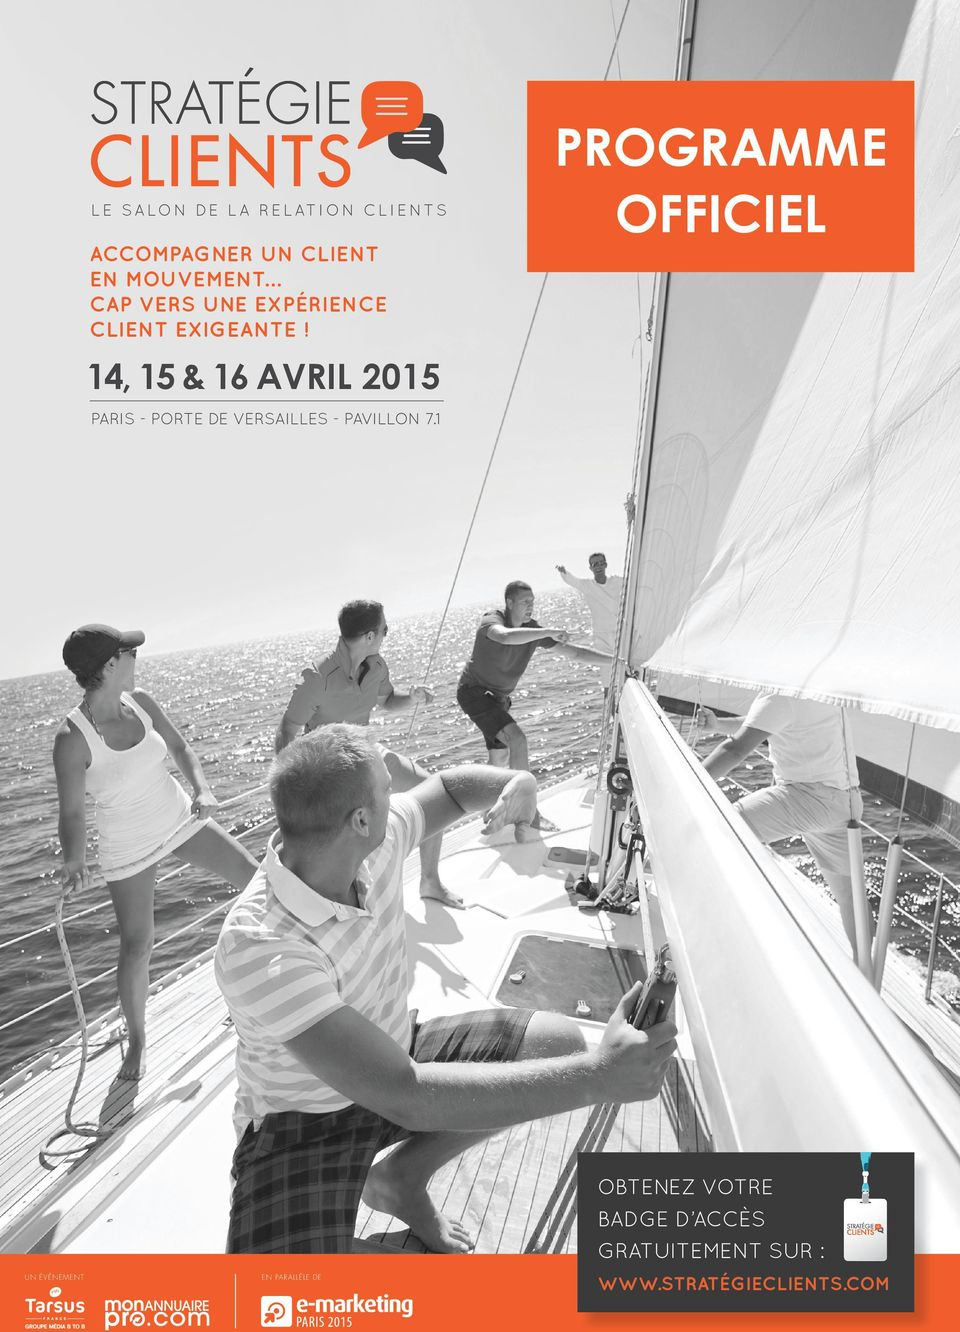 PROGRAMME OFFICIEL 14, 15 & 16 AVRIL 2015 PARIS - PORTE DE VERSAILLES -